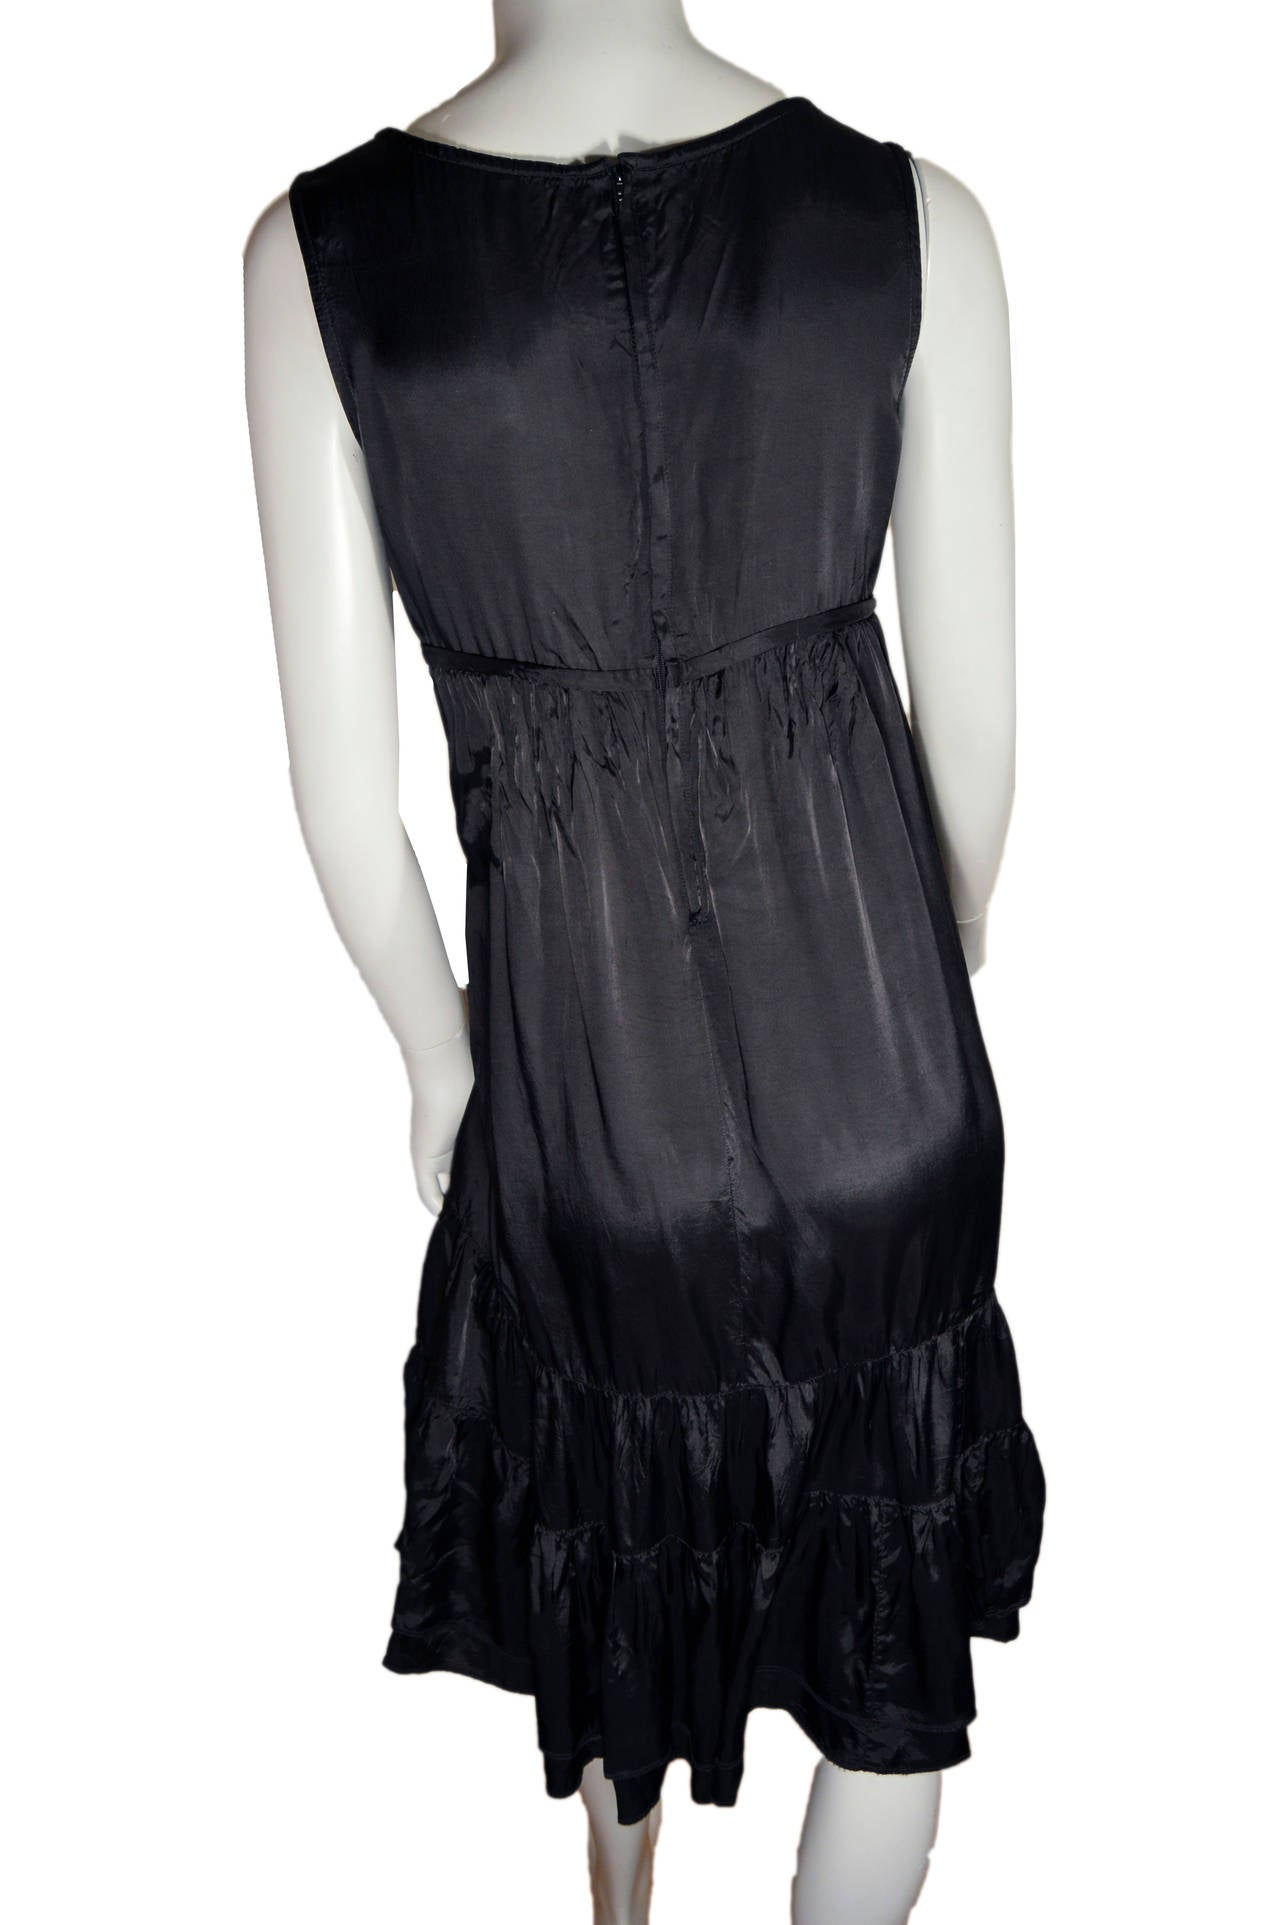 Comme des Garcons Black Rayon Tiered Dress In Fair Condition For Sale In San Francisco, CA